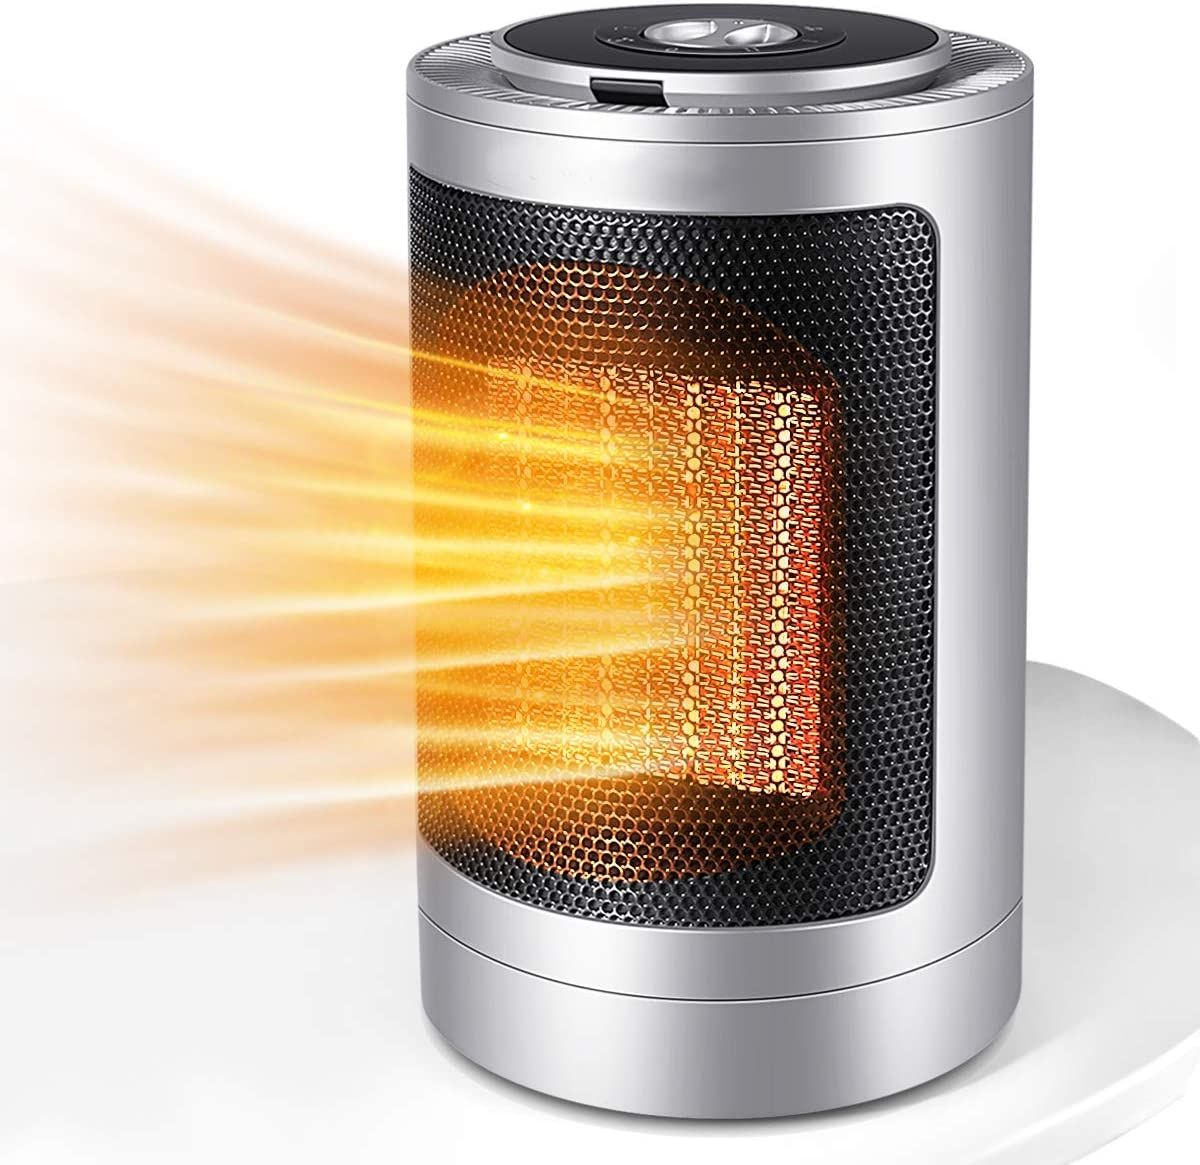 1500W Oscillating Ceramic Tower Heater 12Hrs Timer Remote Control /& LED Display for Home Office Indoor Use Infray Space Heater Portable Fast Heating Electric Fan Heater with Adjustable Thermostat